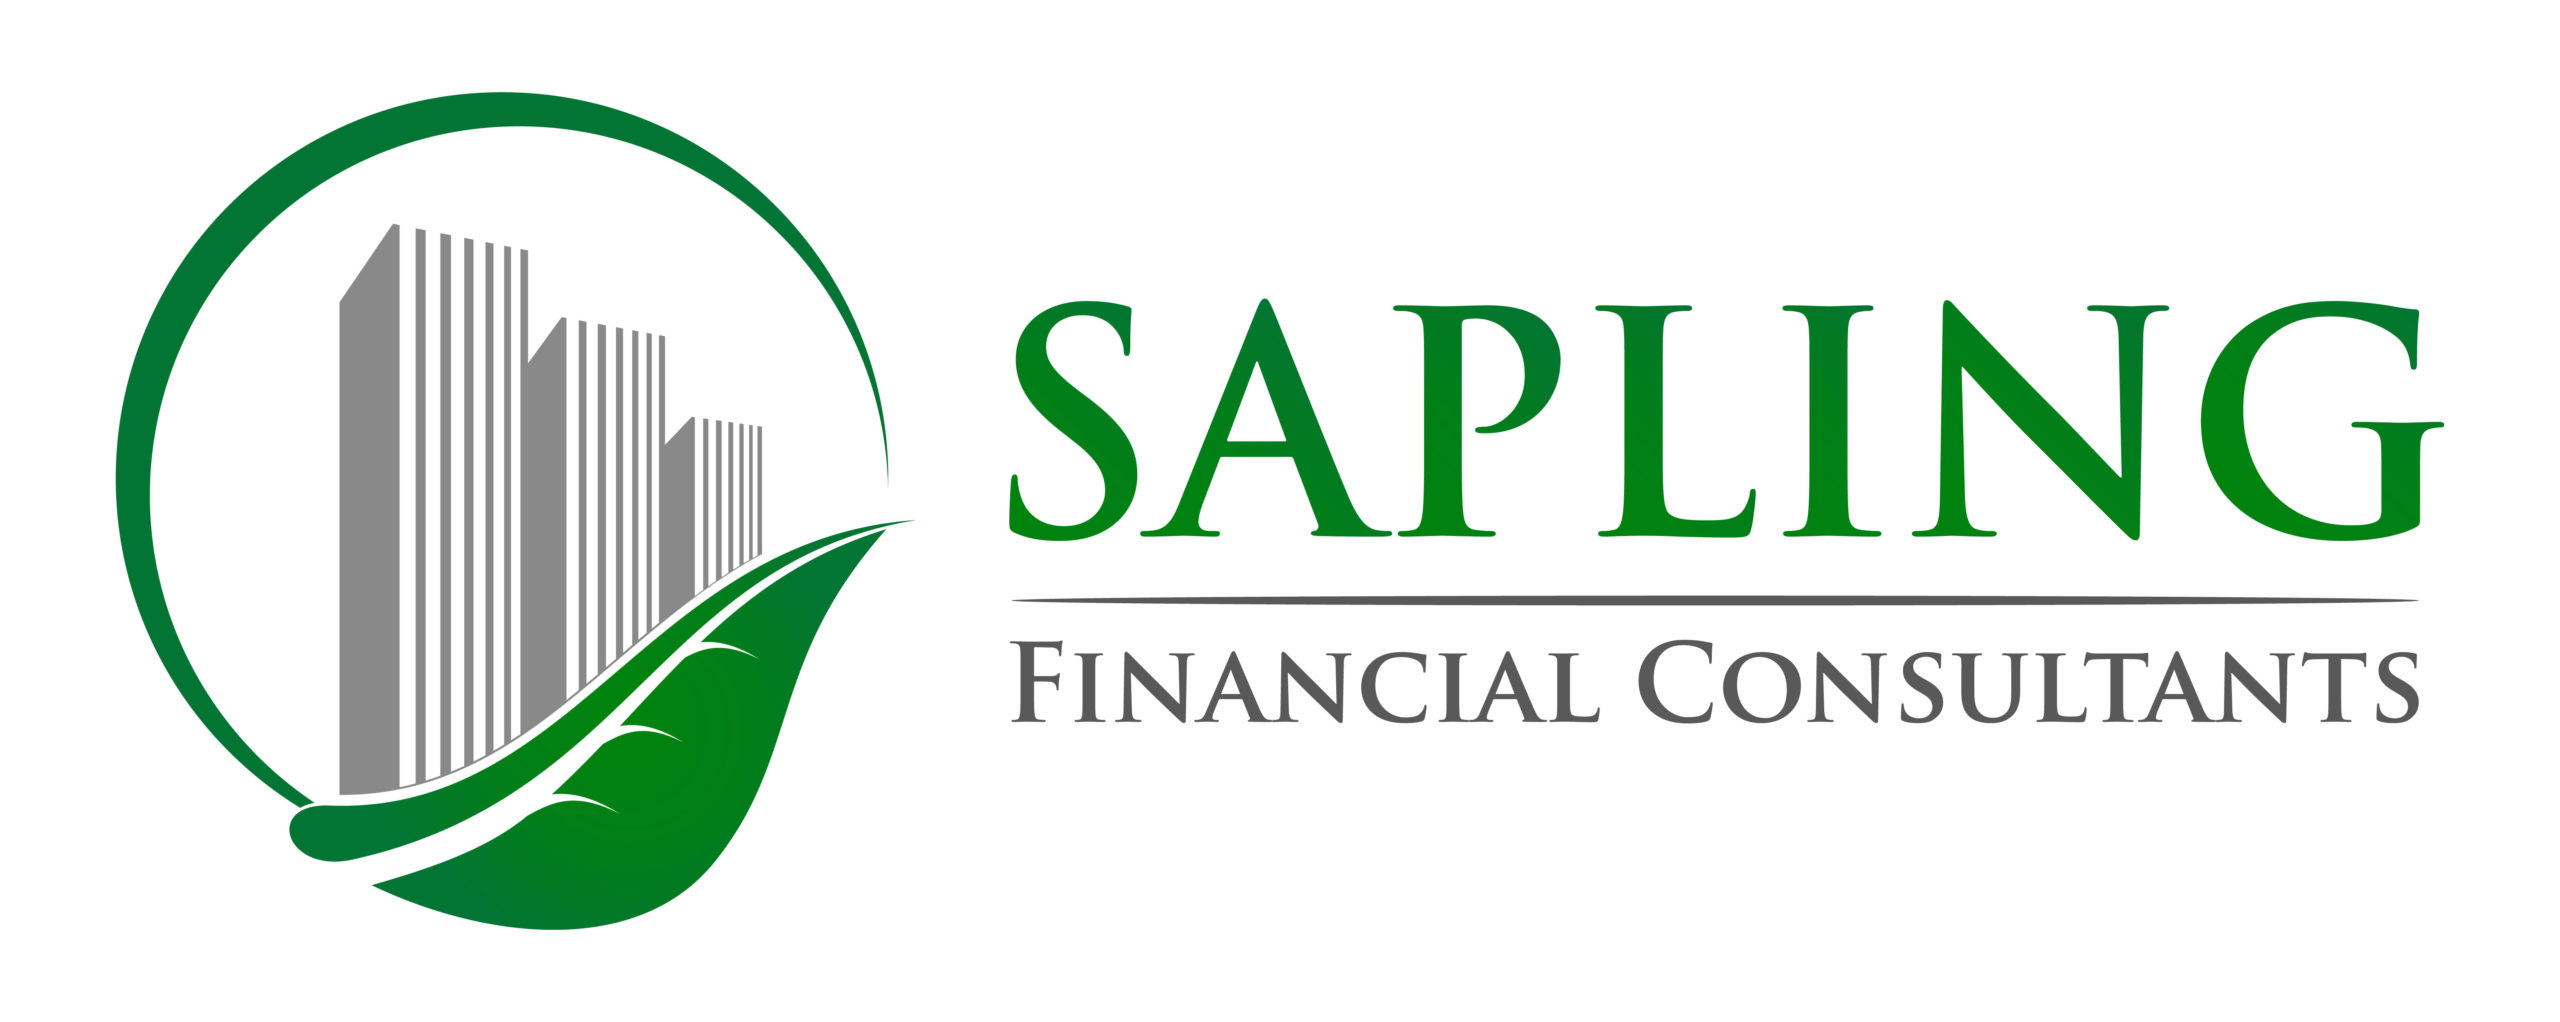 Sapling Financial Consultants Inc.